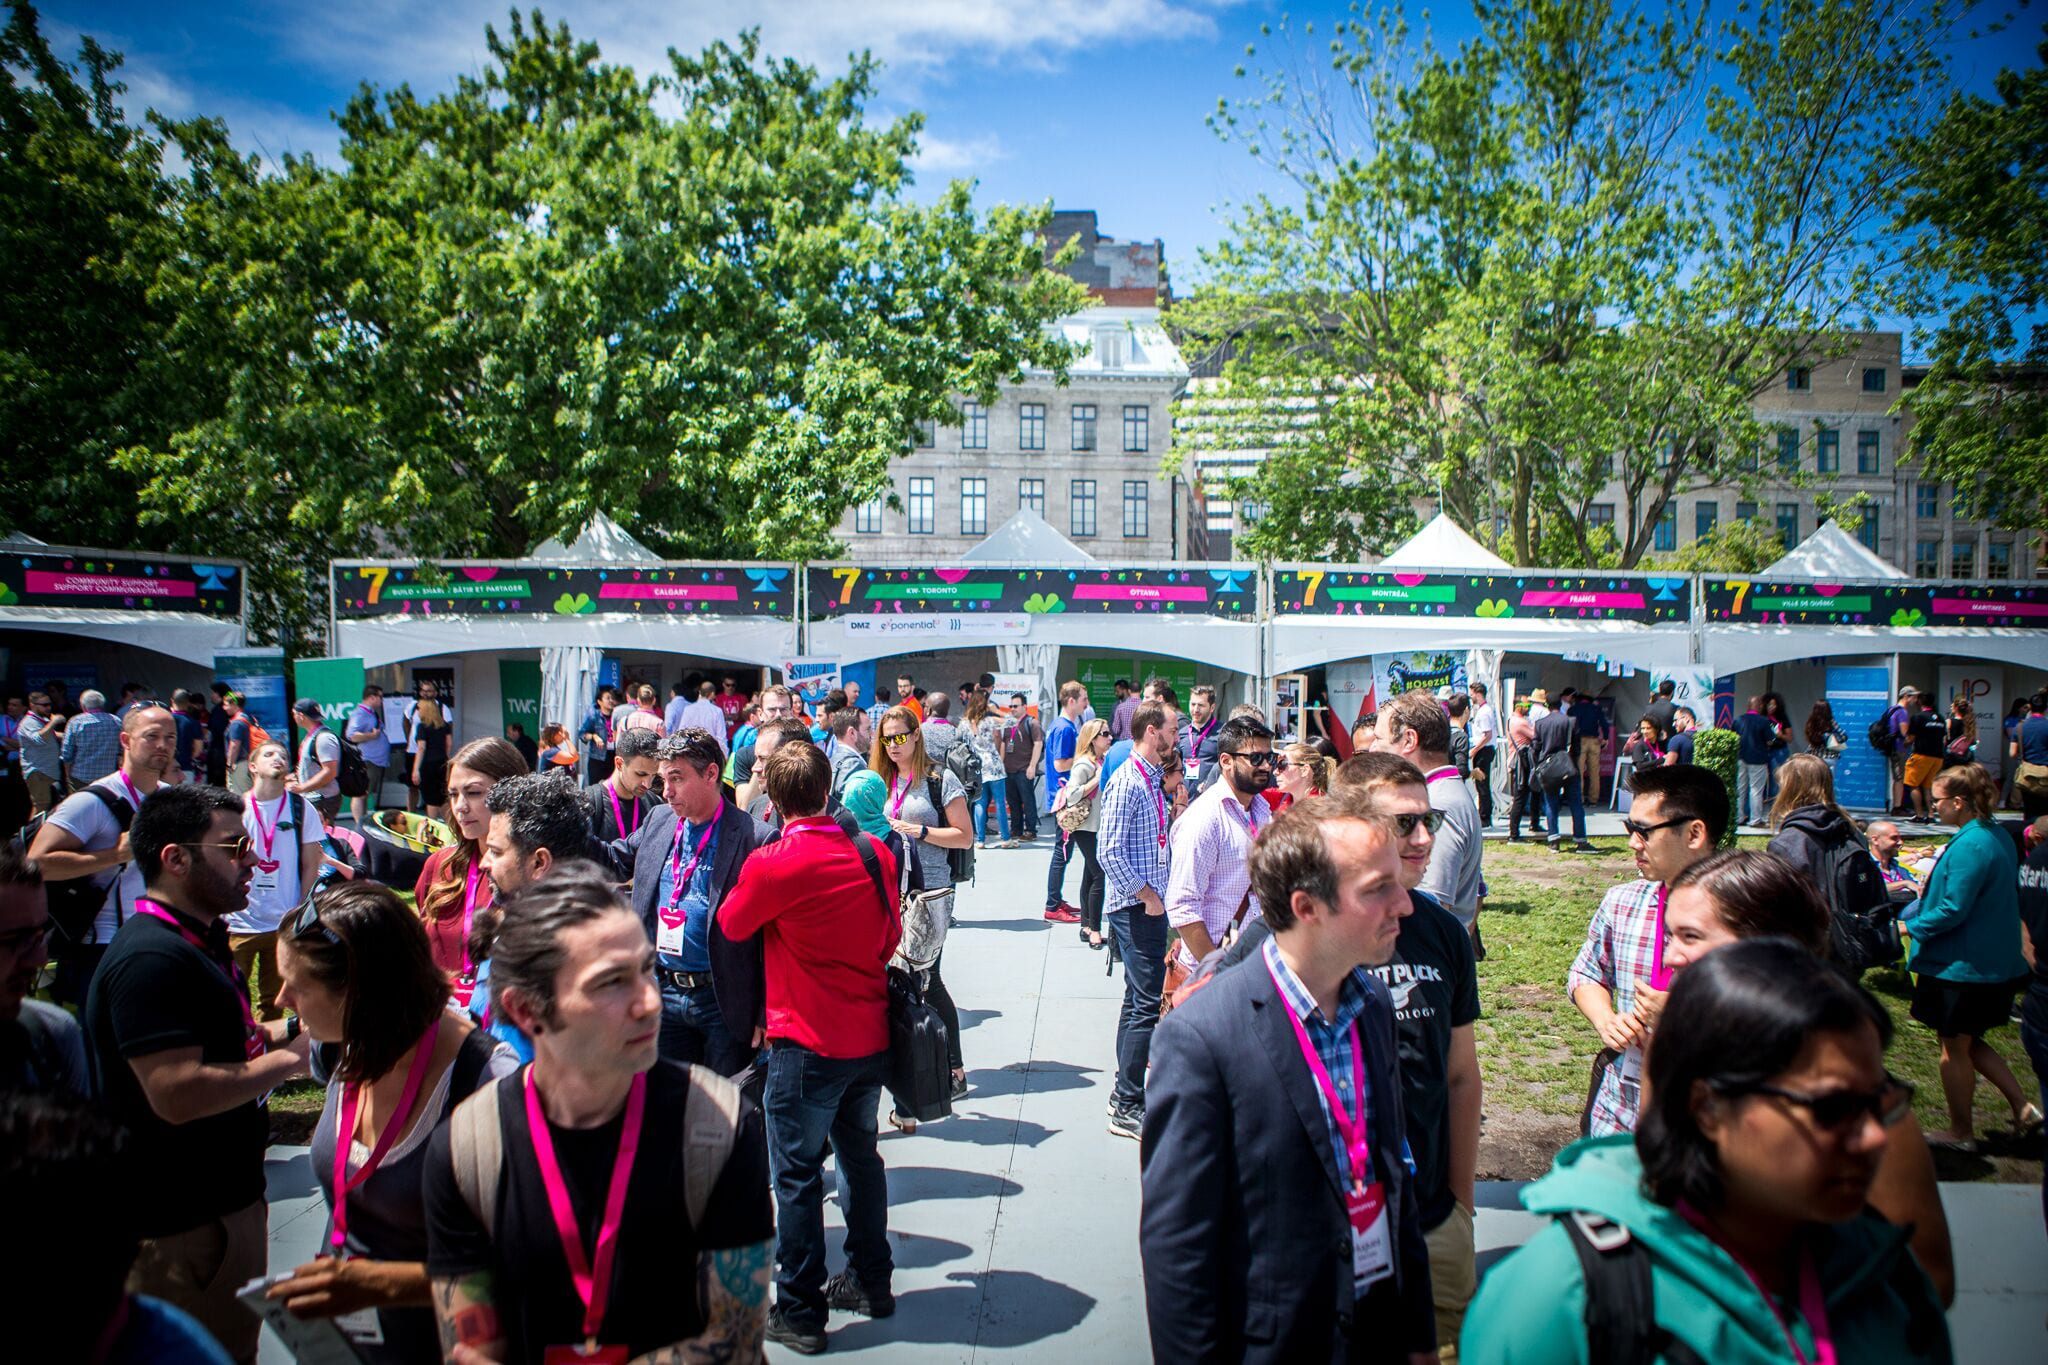 Startupfest is the largest startup event in Canada